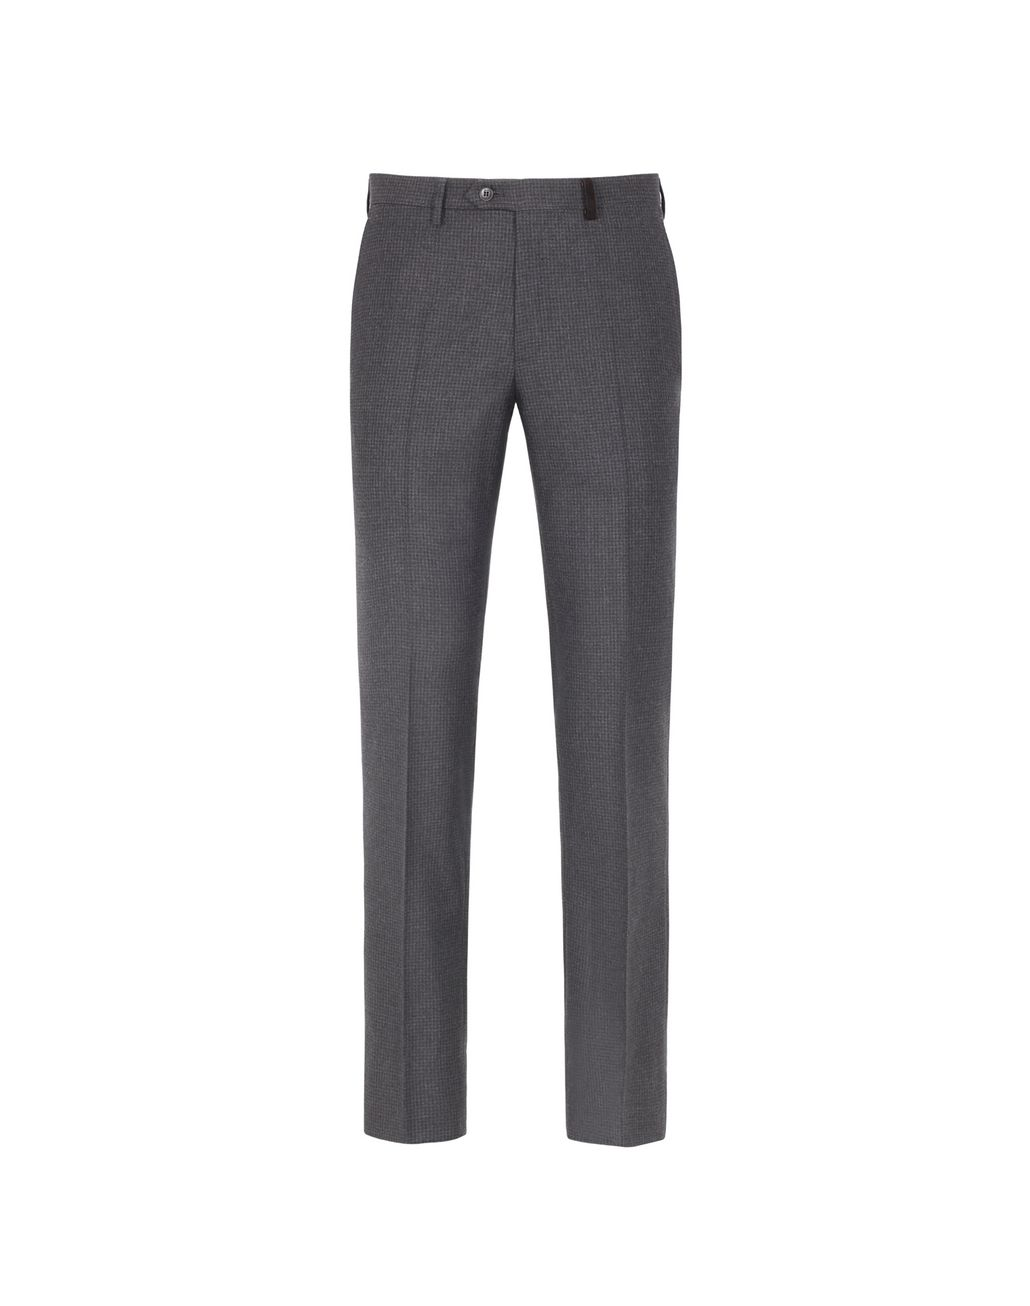 BRIONI Grey Trousers Trousers Man f